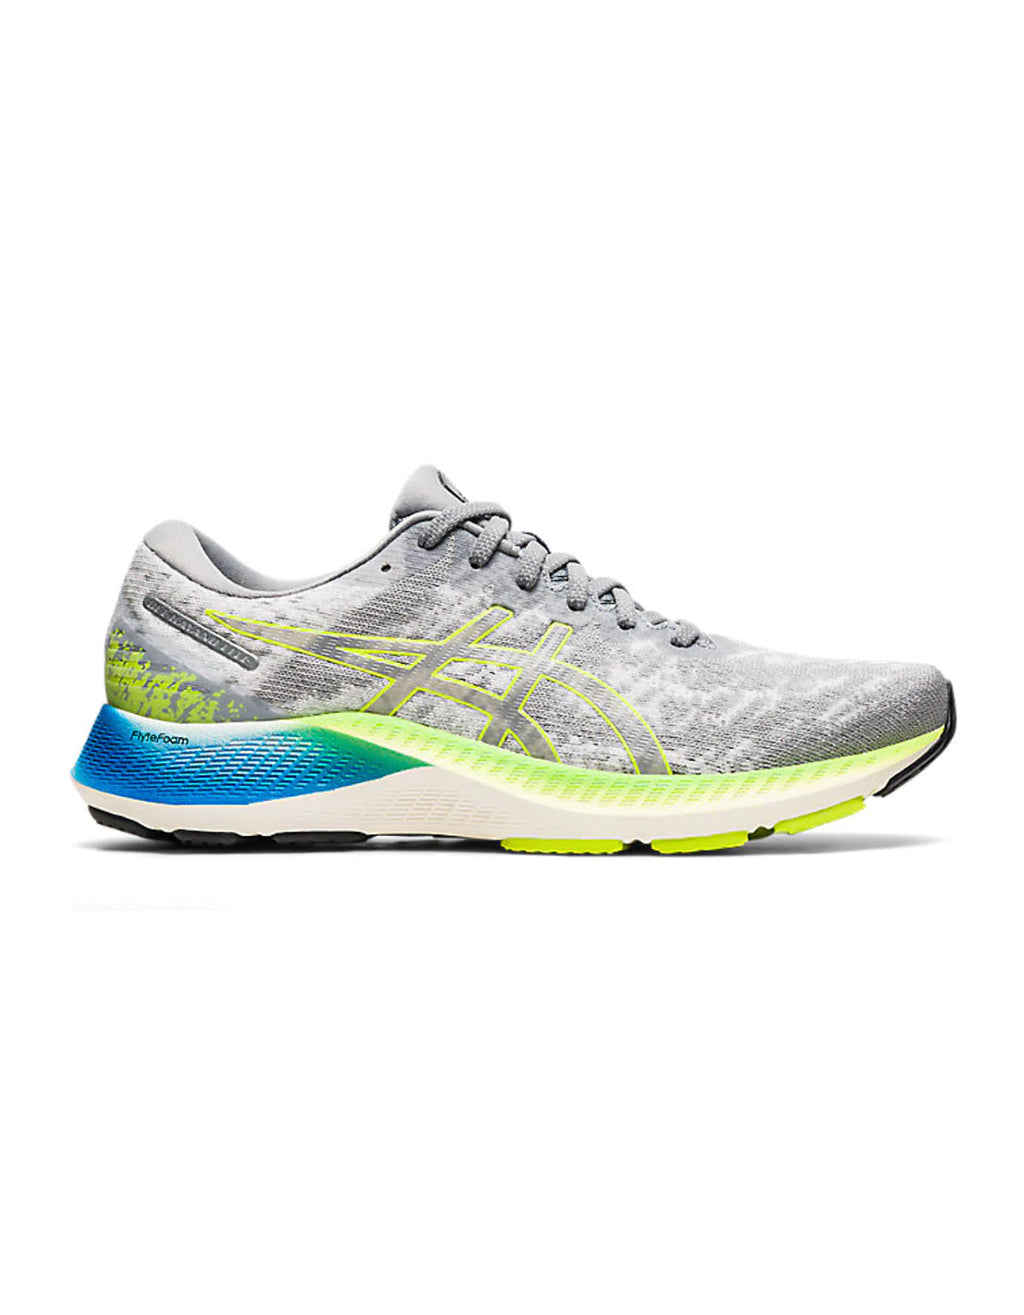 MEN'S GEL-KAYANO LITE